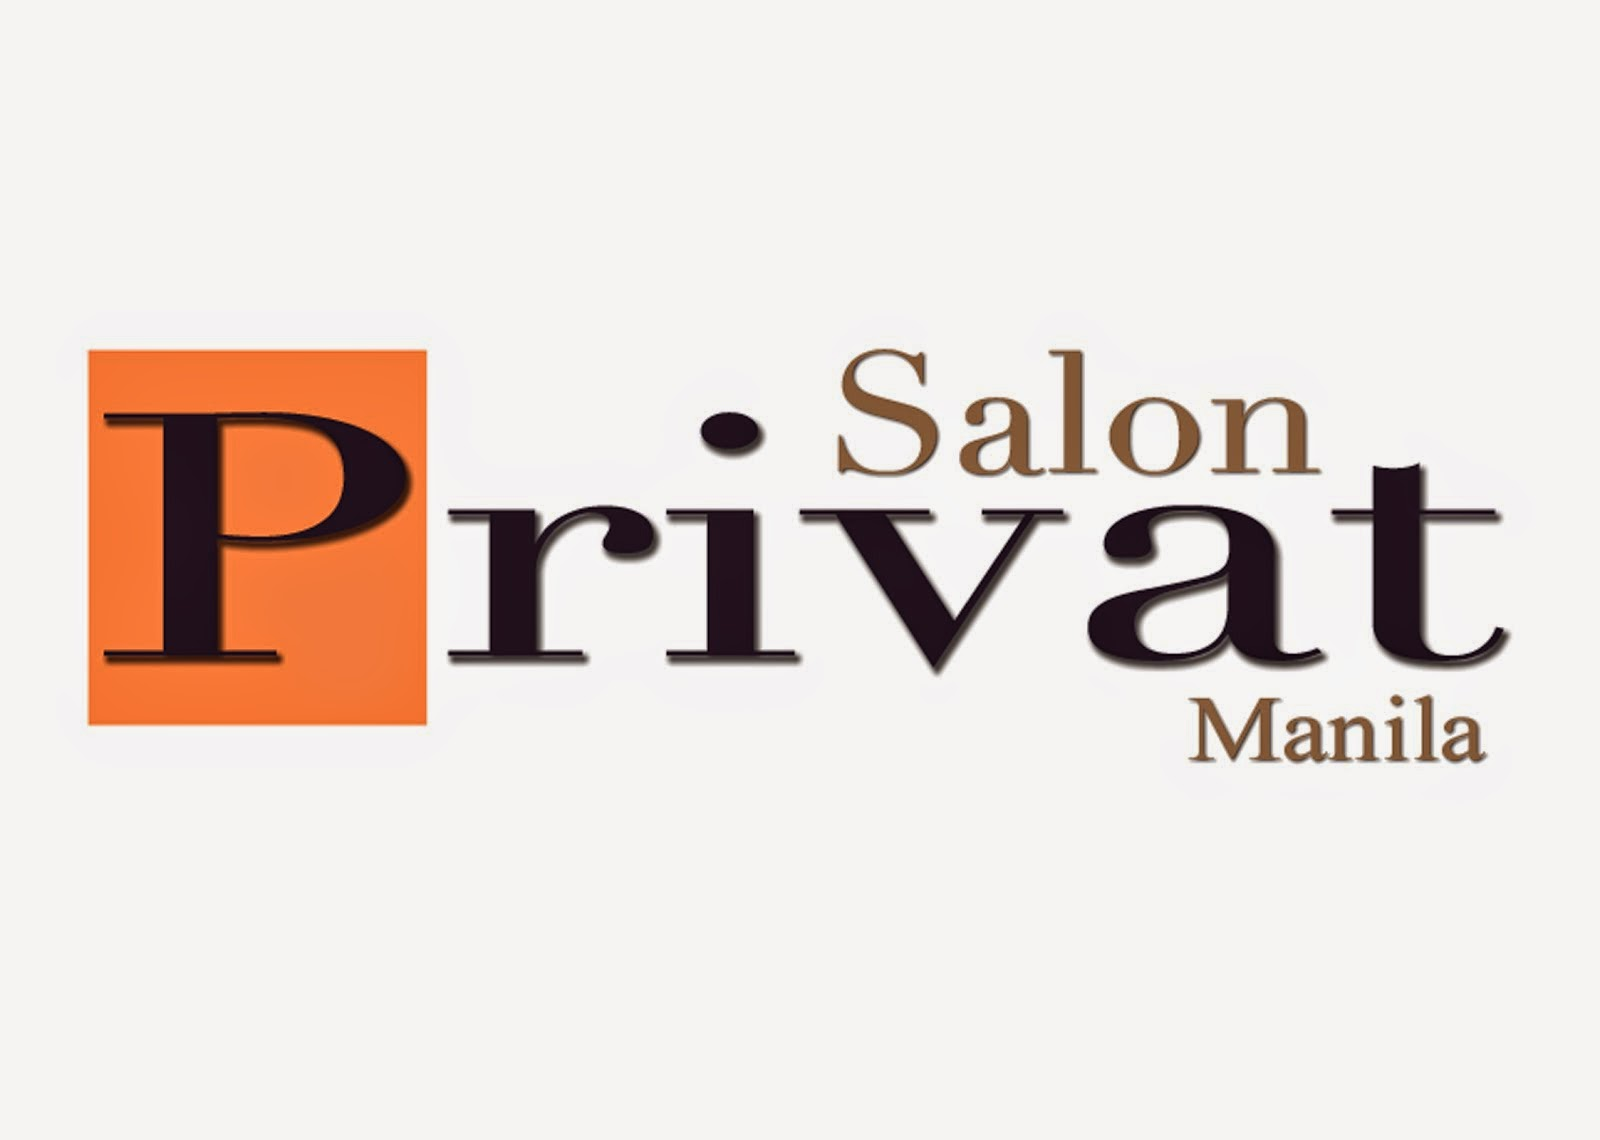 Salon Privat Manila